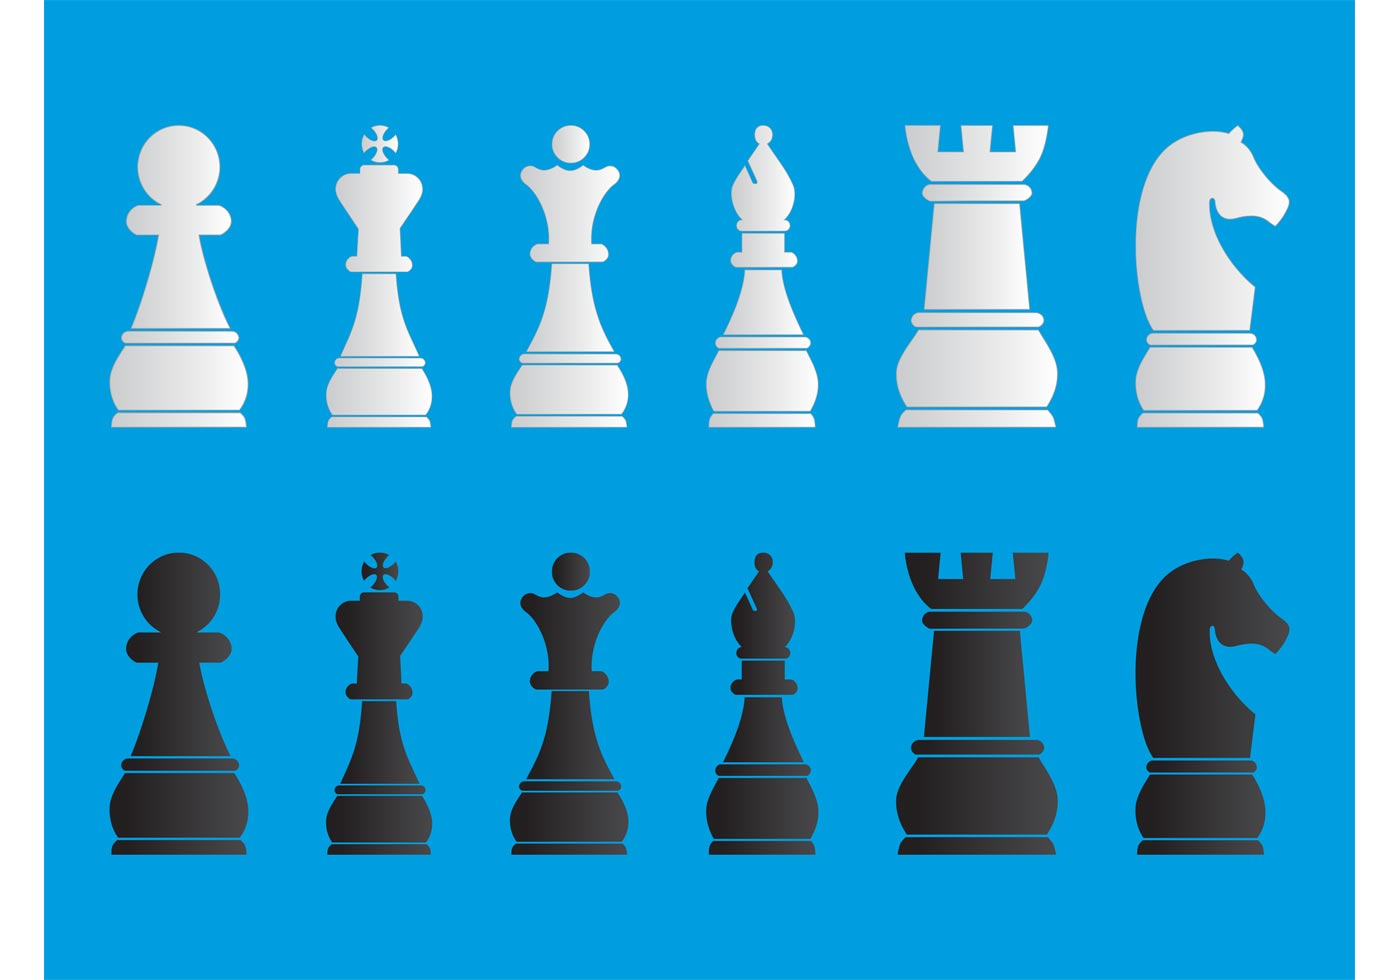 Chess Pieces Set - Download Free Vector Art, Stock ...